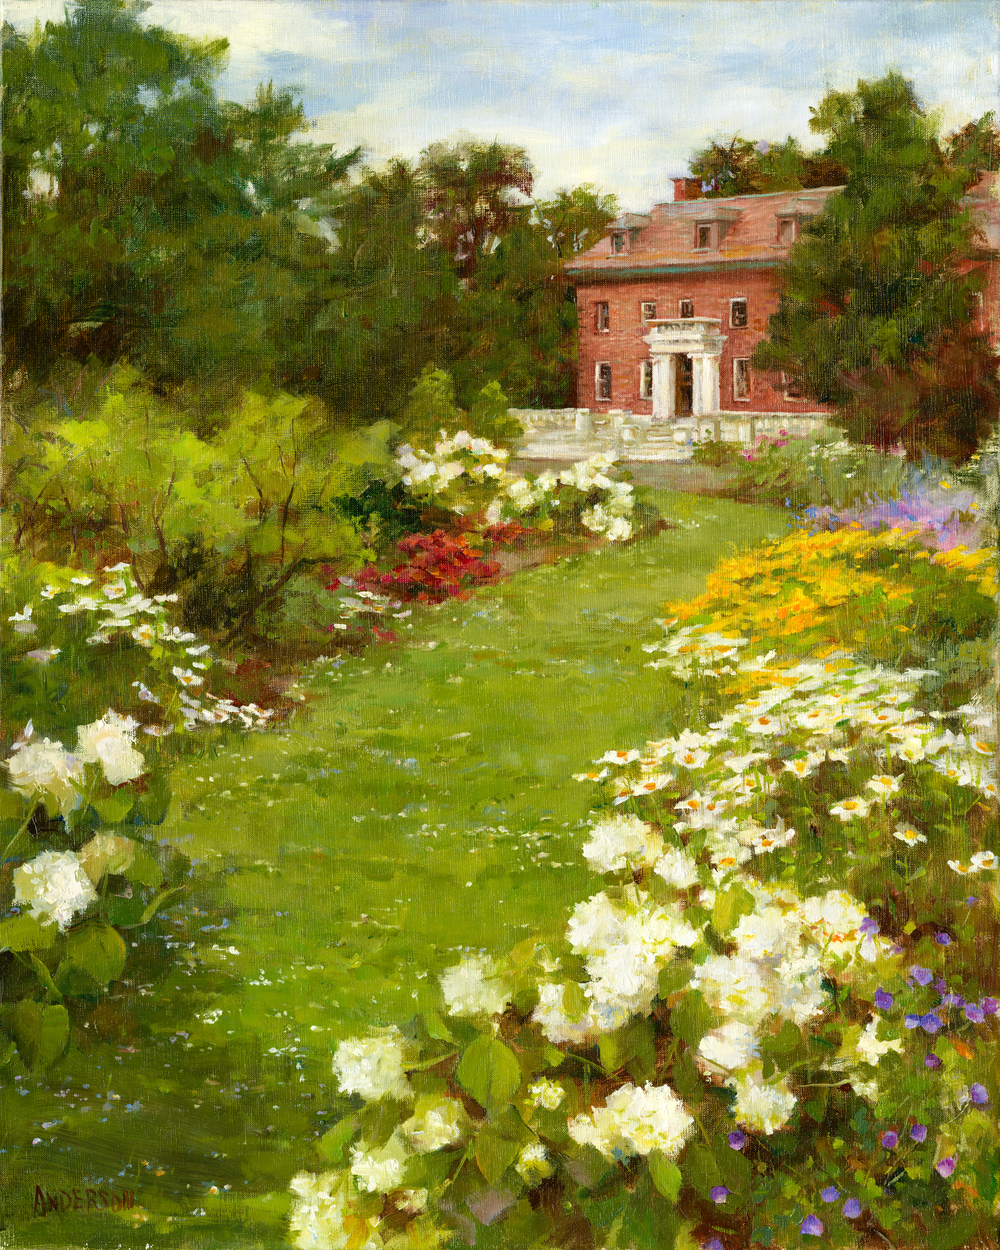 """The Manor House and Garden"" - SOLD 16x20 oil ©Kathy Anderson 2014 The painting will be featured by Elm Bank during a Fundraising event in October 2014."